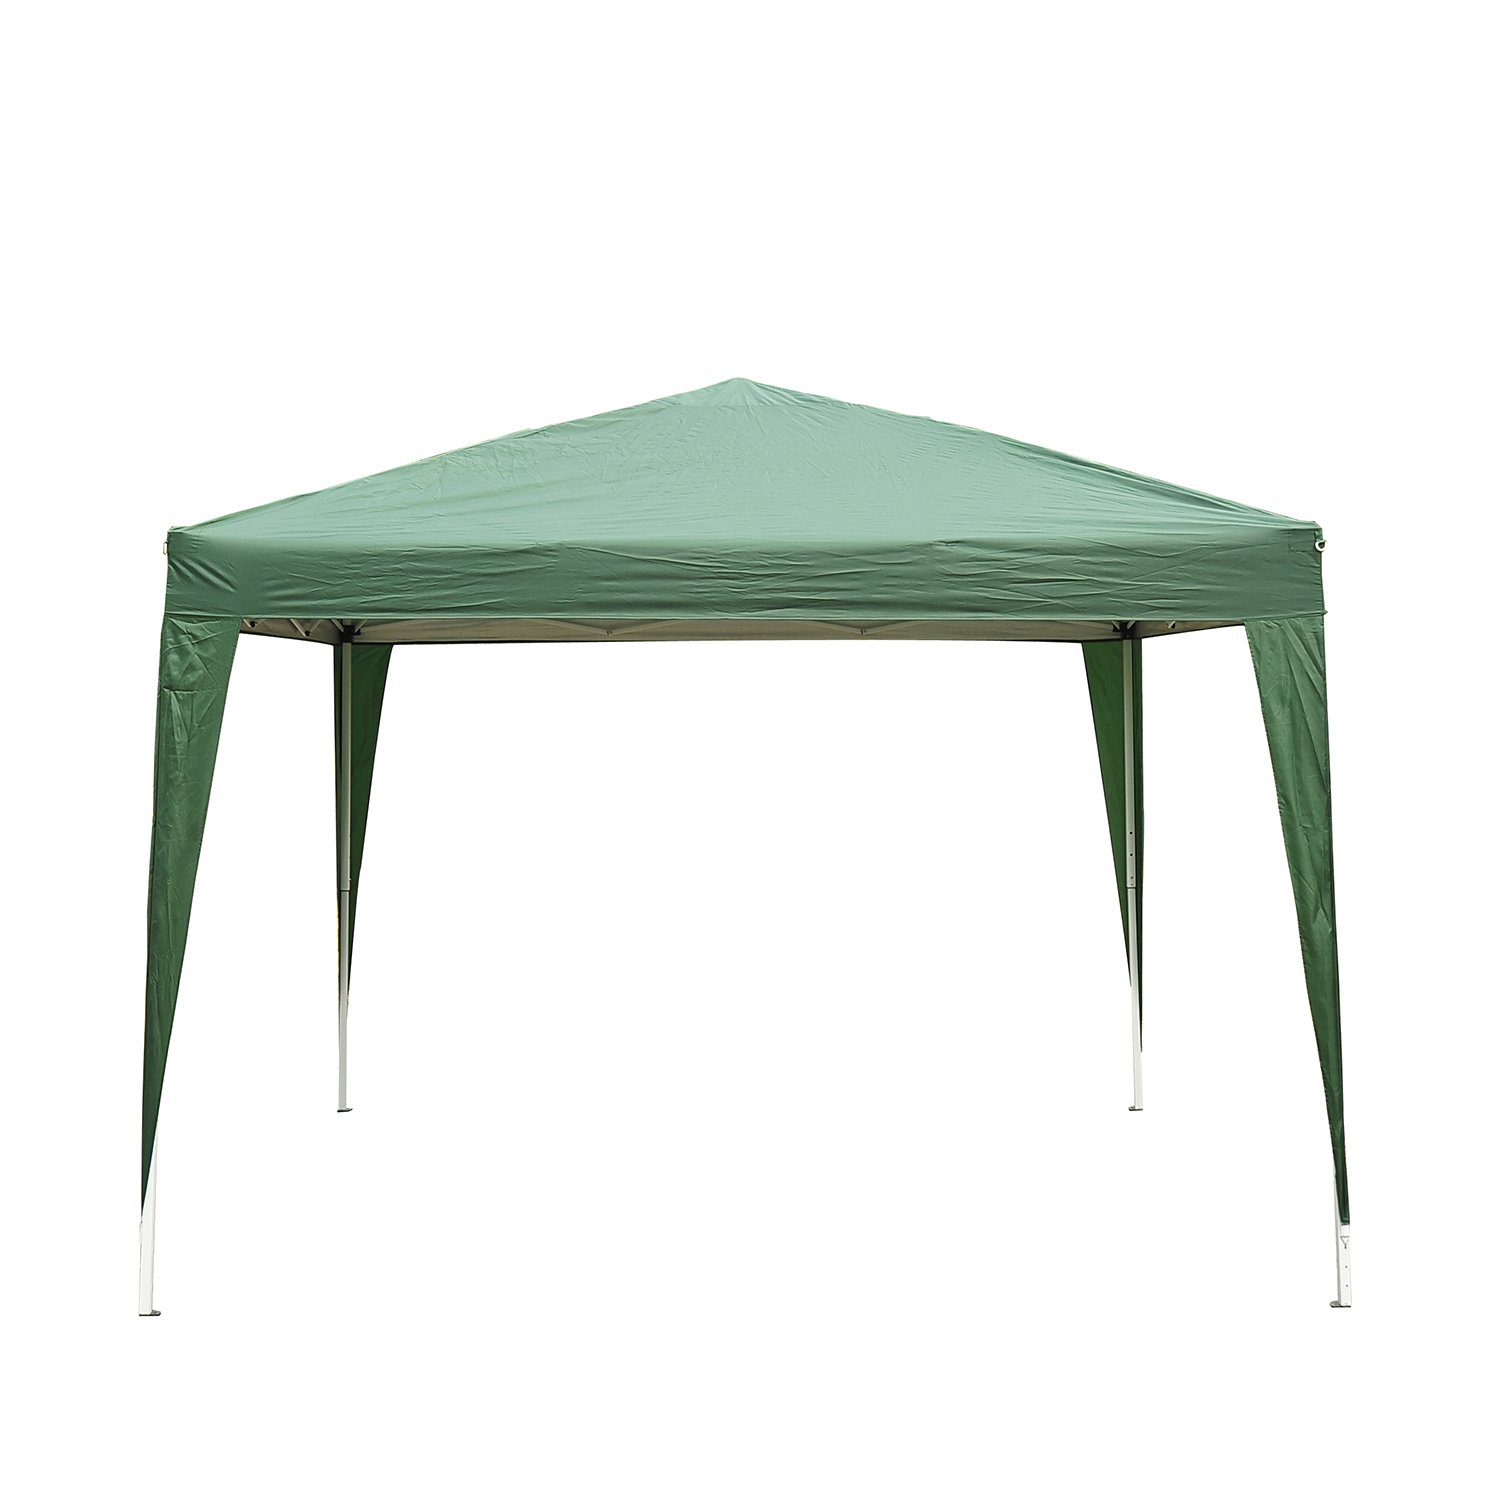 Outsunny 3 X 3M Outdoor Garden Heavy Duty Pop Up Gazebo Marquee Party Tent Wedding Canopy